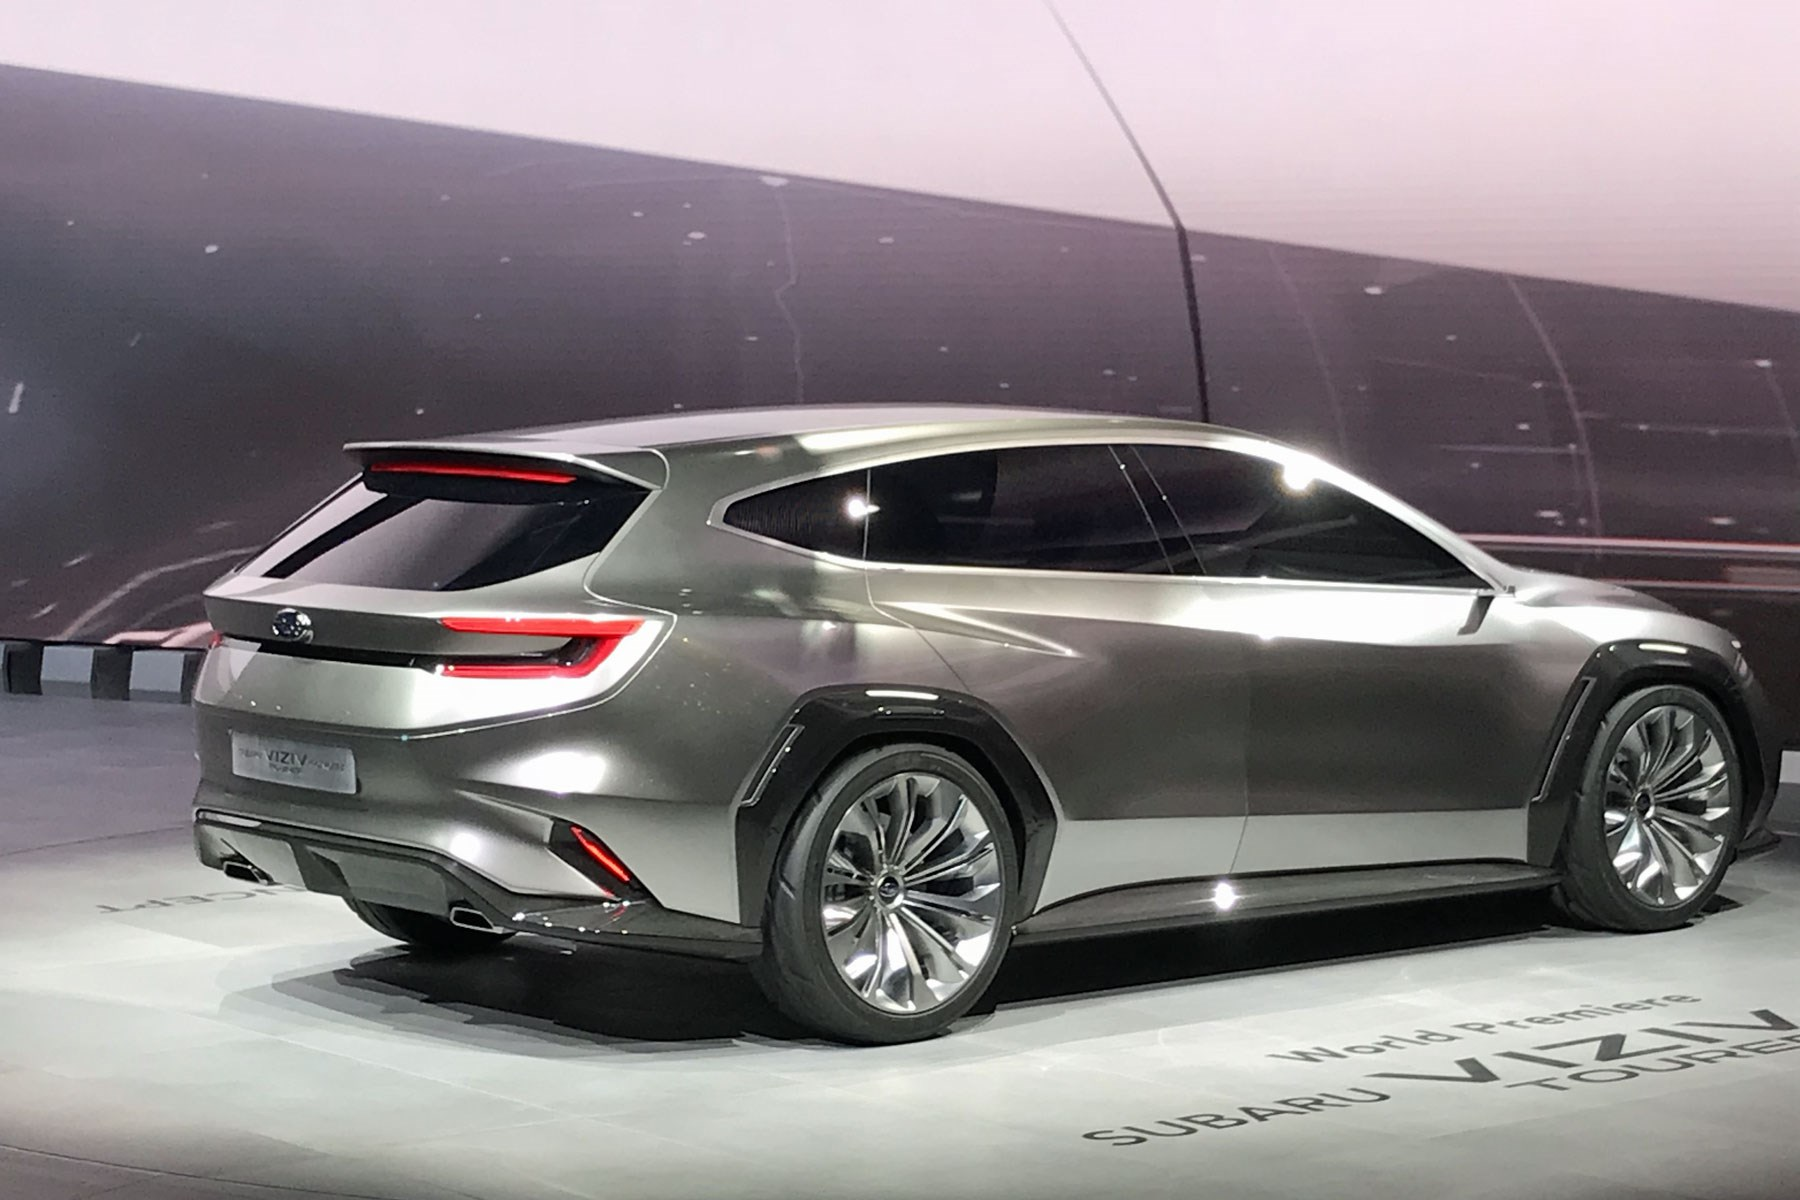 Rear View Of The Subaru Viziv Tourer Concept At Geneva 2018